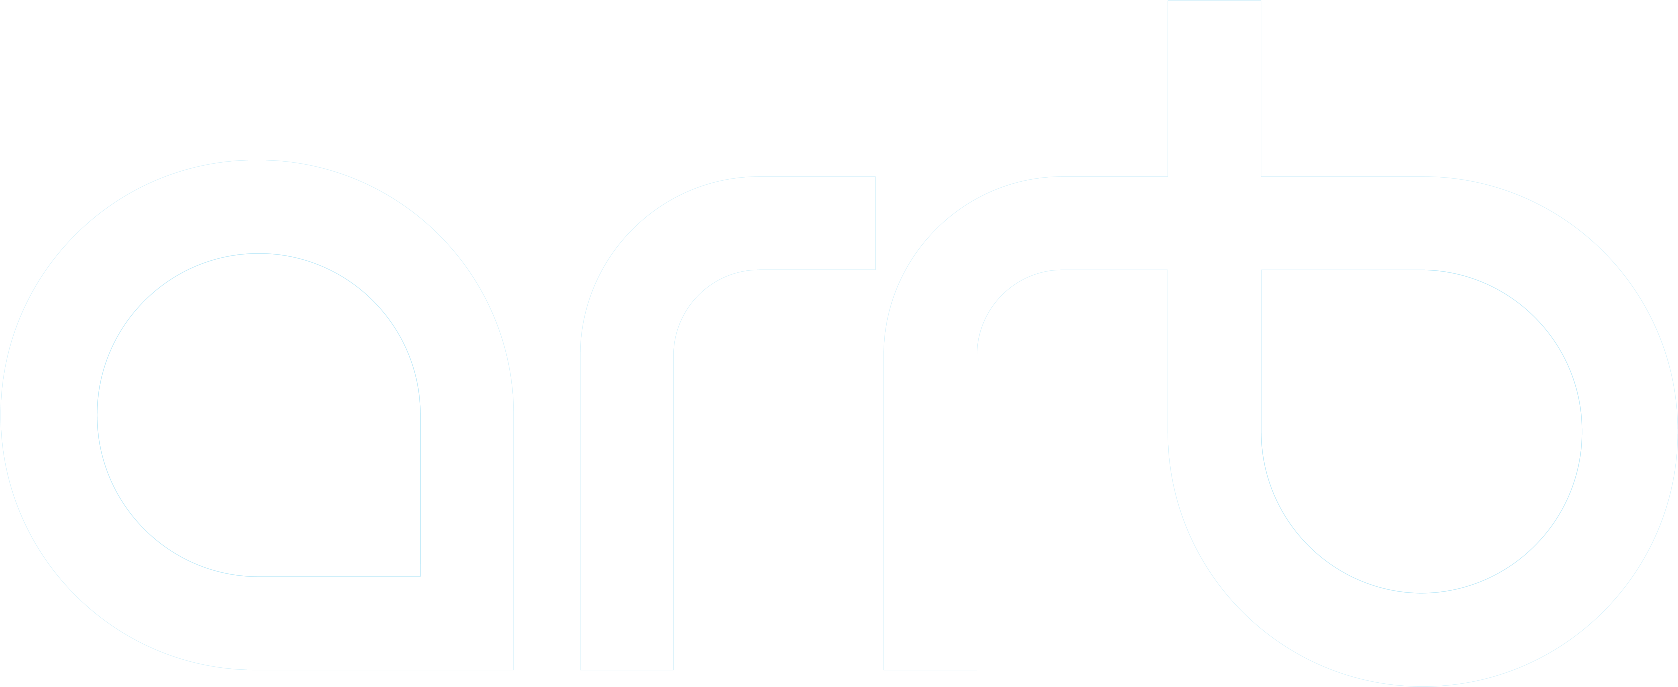 arrb_logo